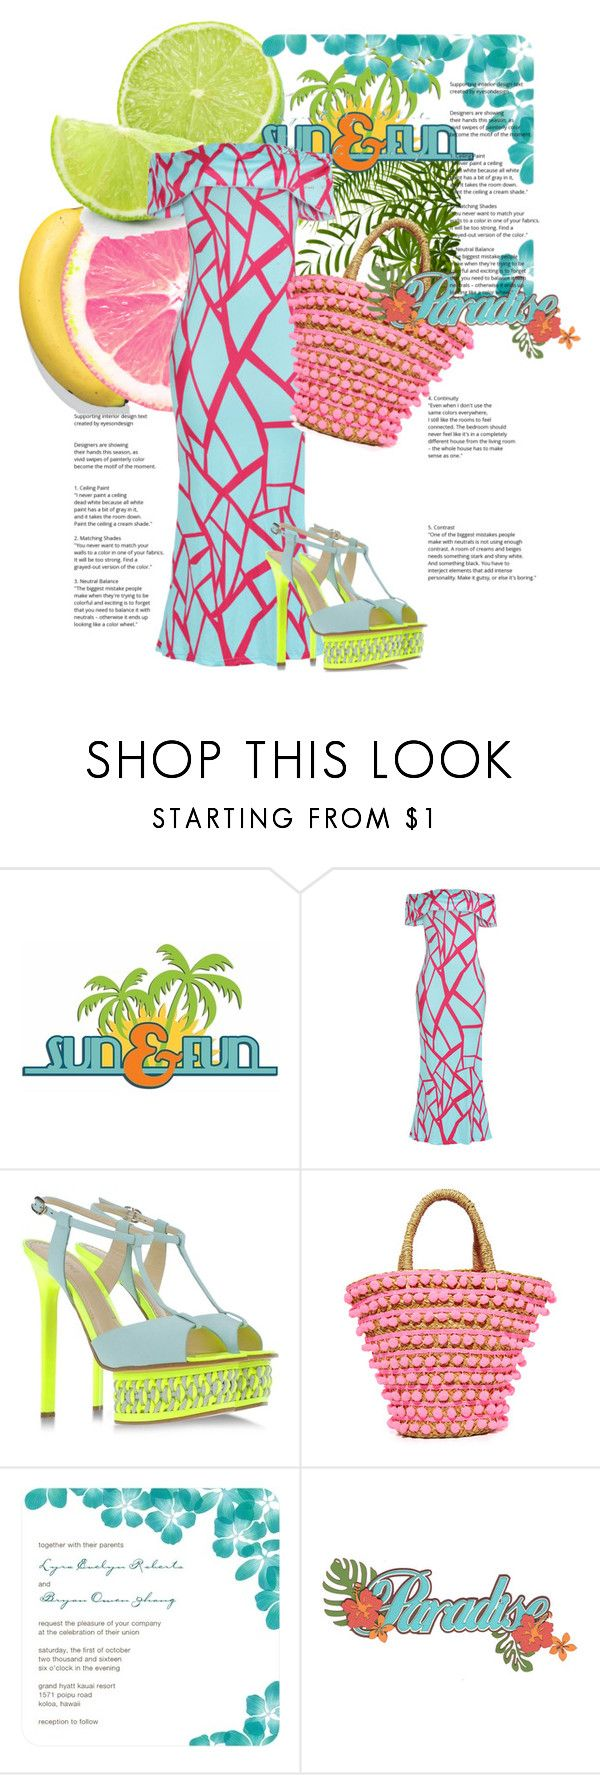 """""""Something Delish!"""" by the-house-of-kasin ❤ liked on Polyvore featuring Martha Stewart, WithChic, Pollini, Mystique, Summer, neon and summertime"""